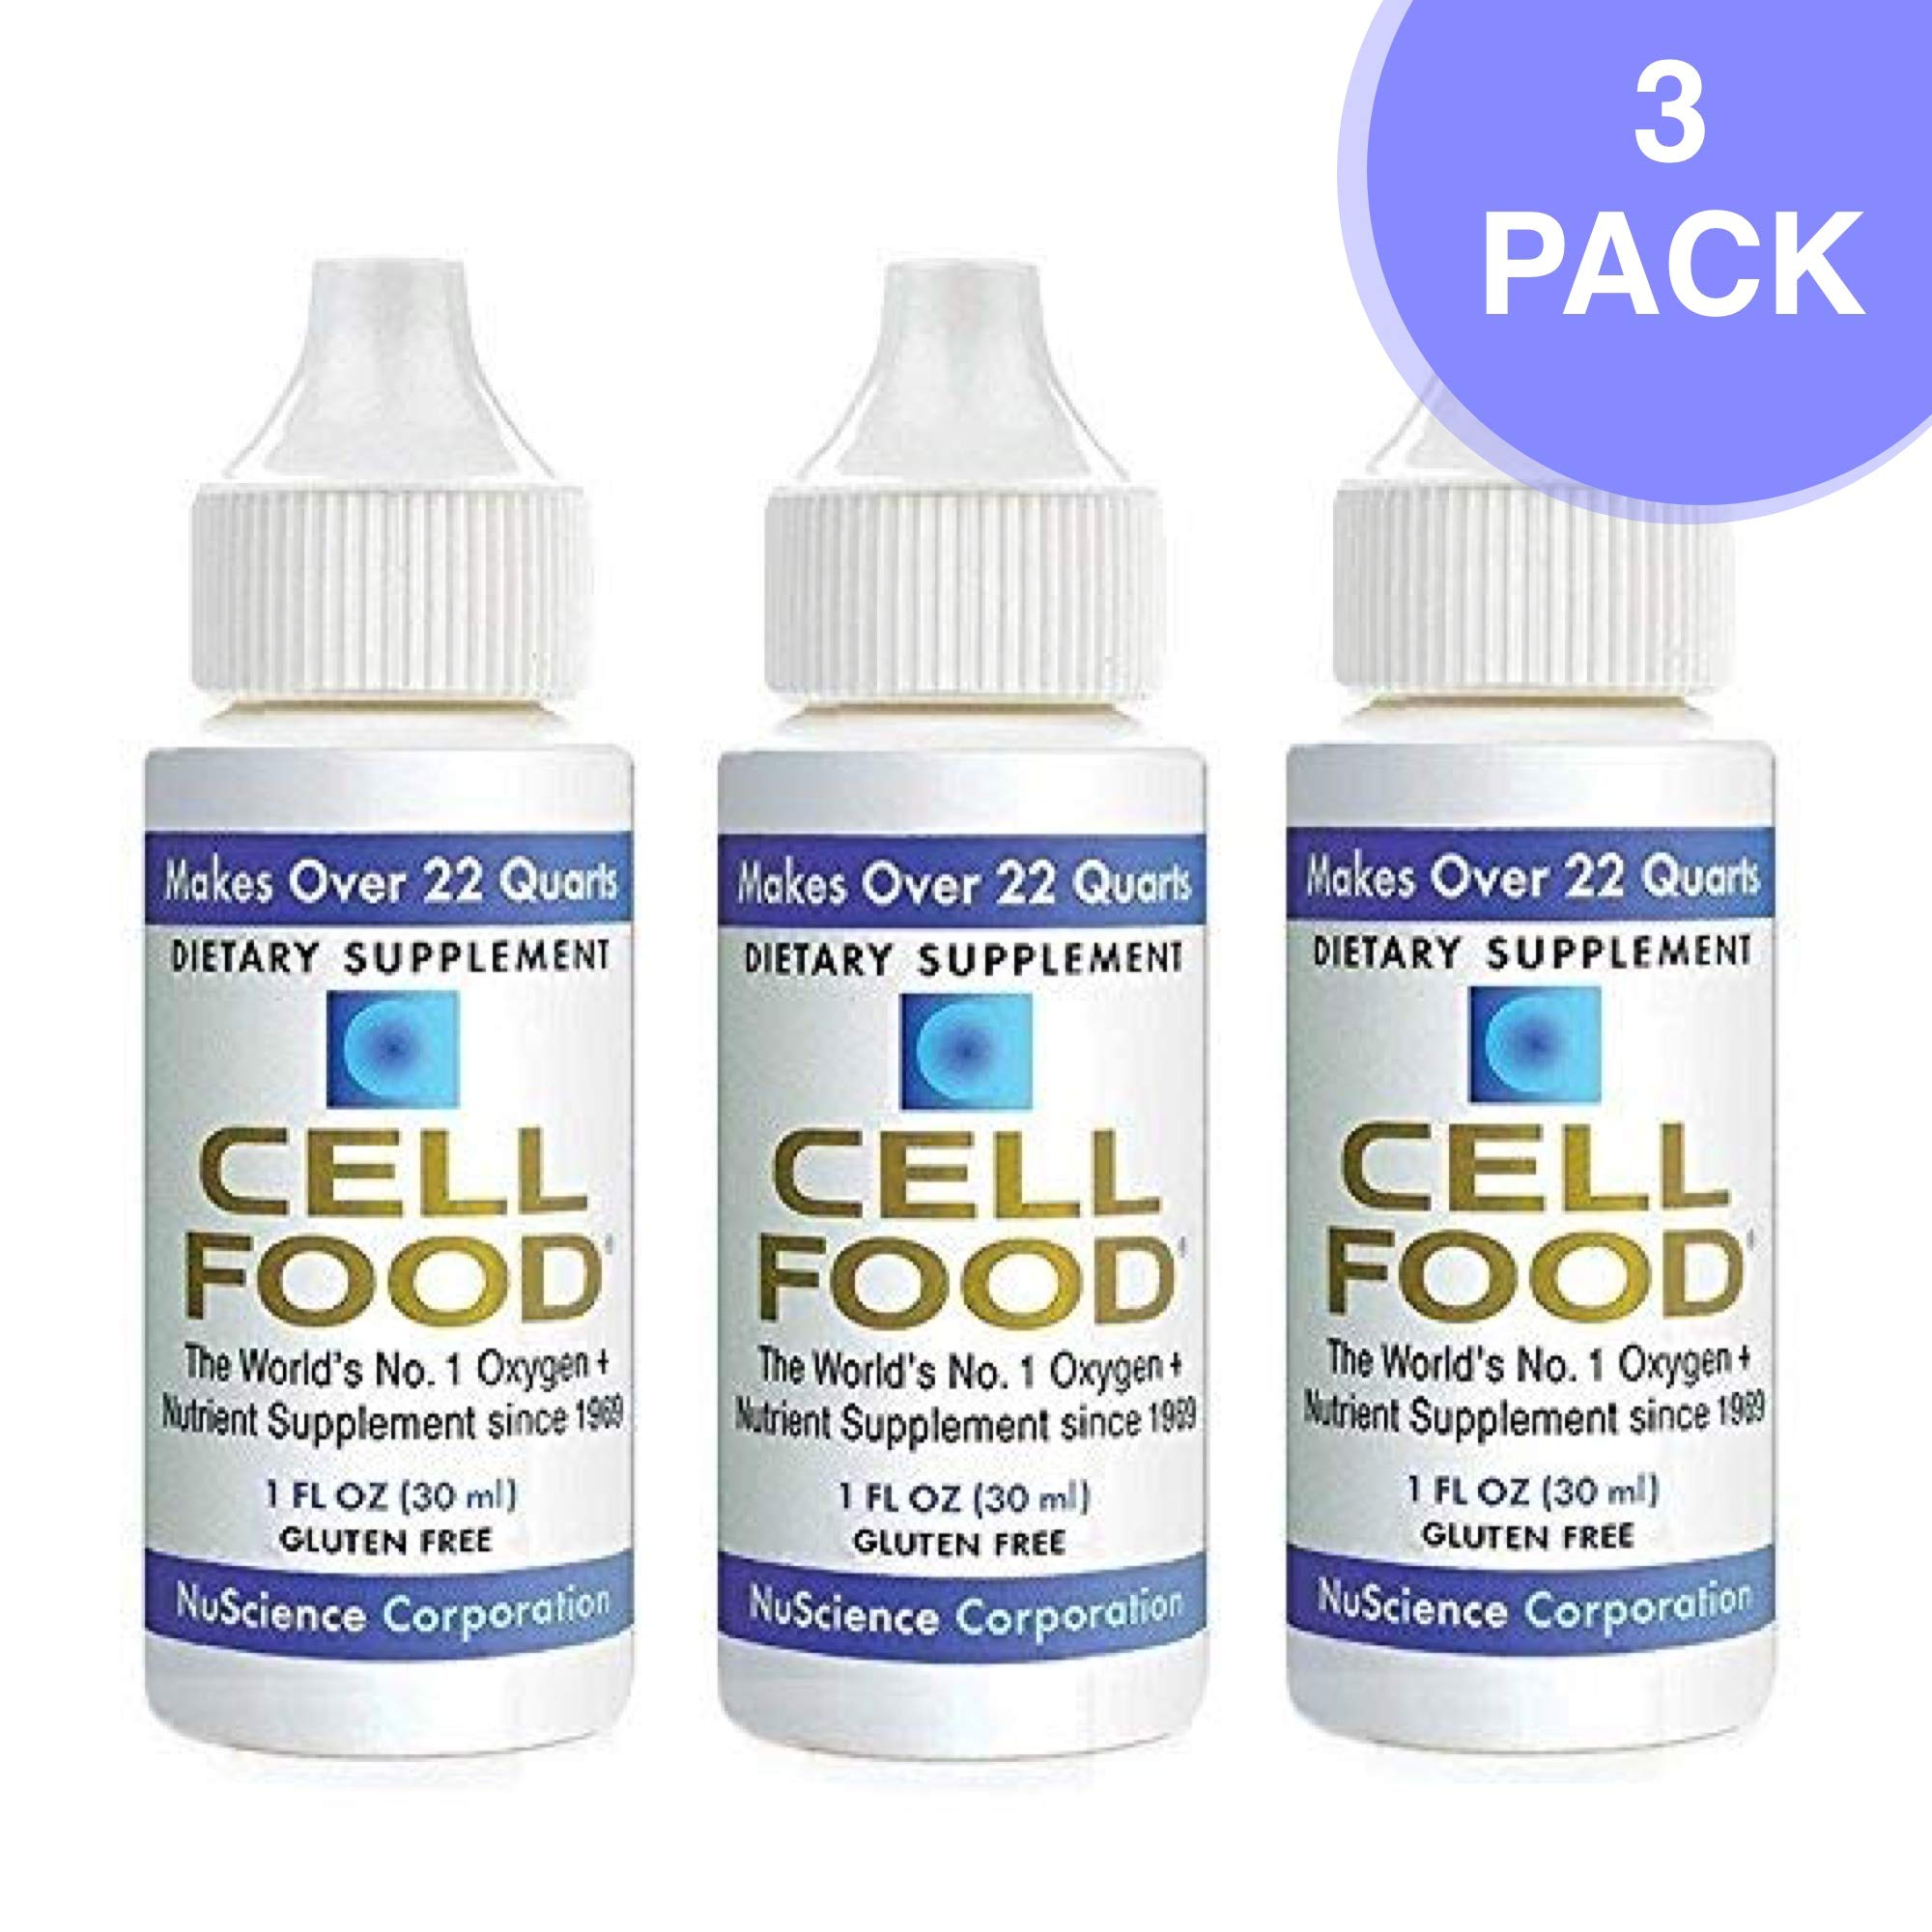 Cellfood Liquid Concentrate, 1 Oz. Bottle (Pack of 3) - Original Oxygenating Formula Containing Seaweed Sourced Minerals, Enzymes, Amino Acids, Electrolytes, Superior Absorption- Gluten Free, GMO Free